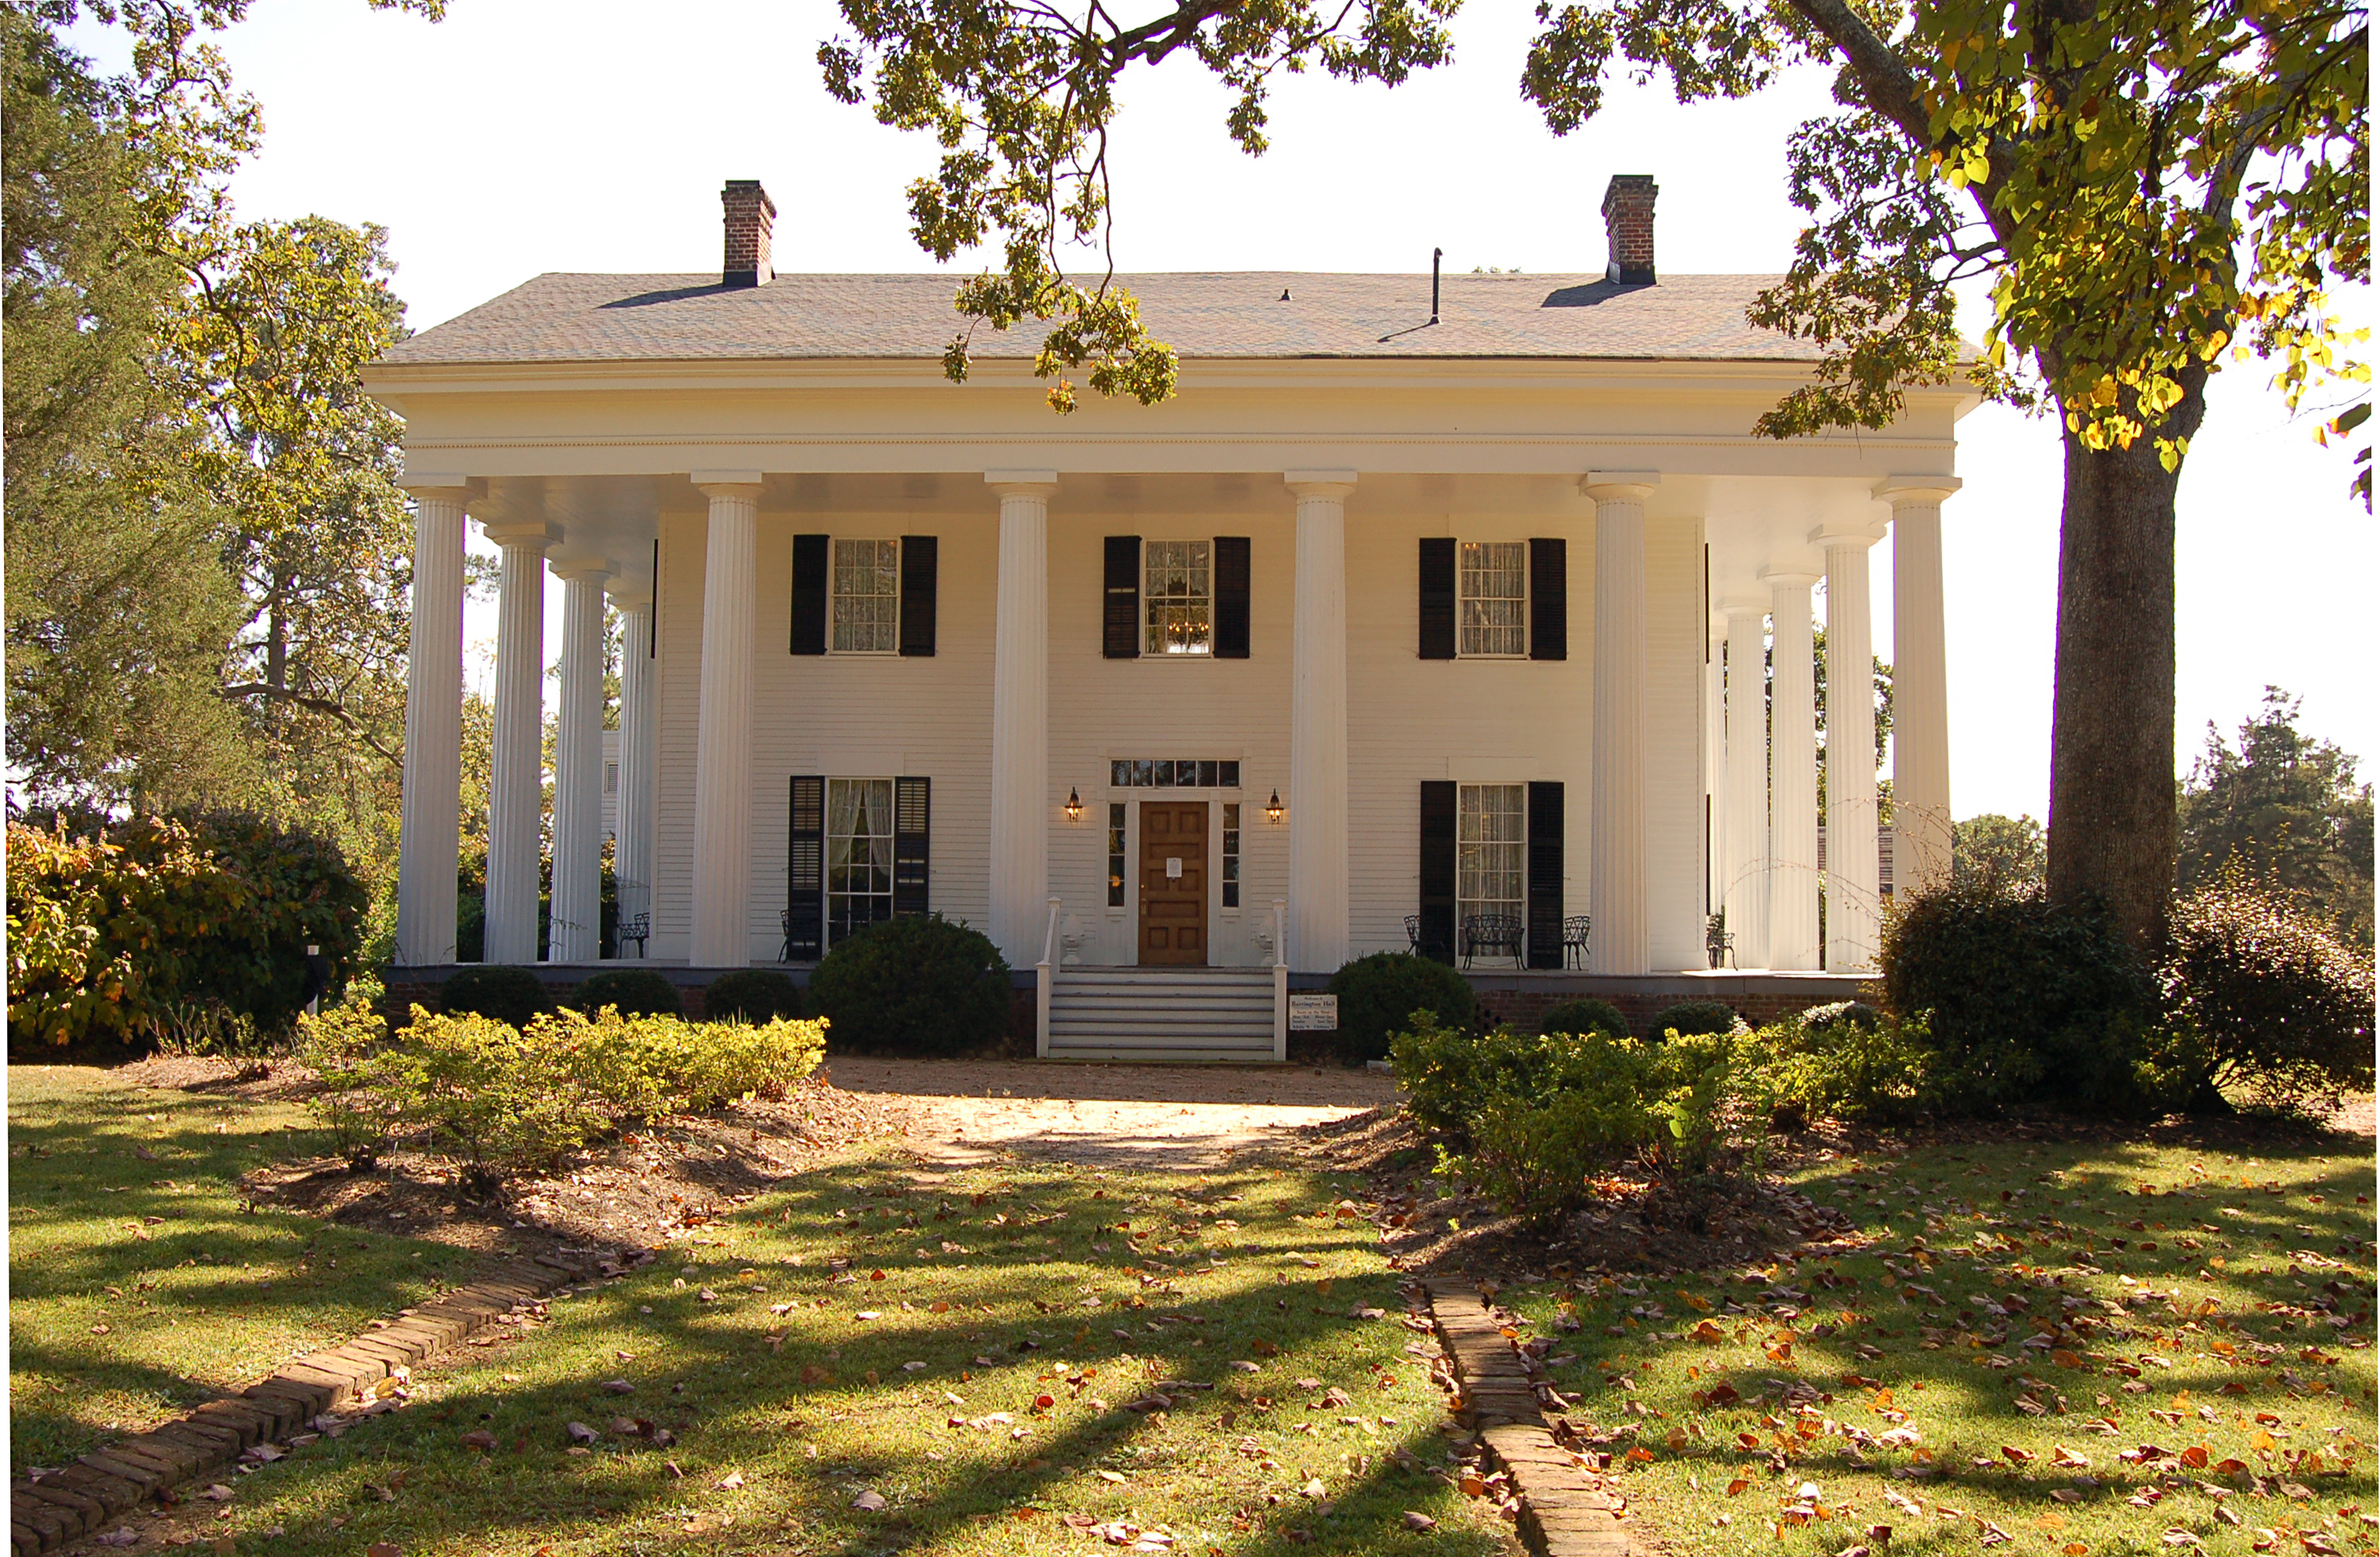 Antebellum architecture - Wikipedia on southern living homes, southern made homes, southern inspired homes, southern small homes, southern california homes,